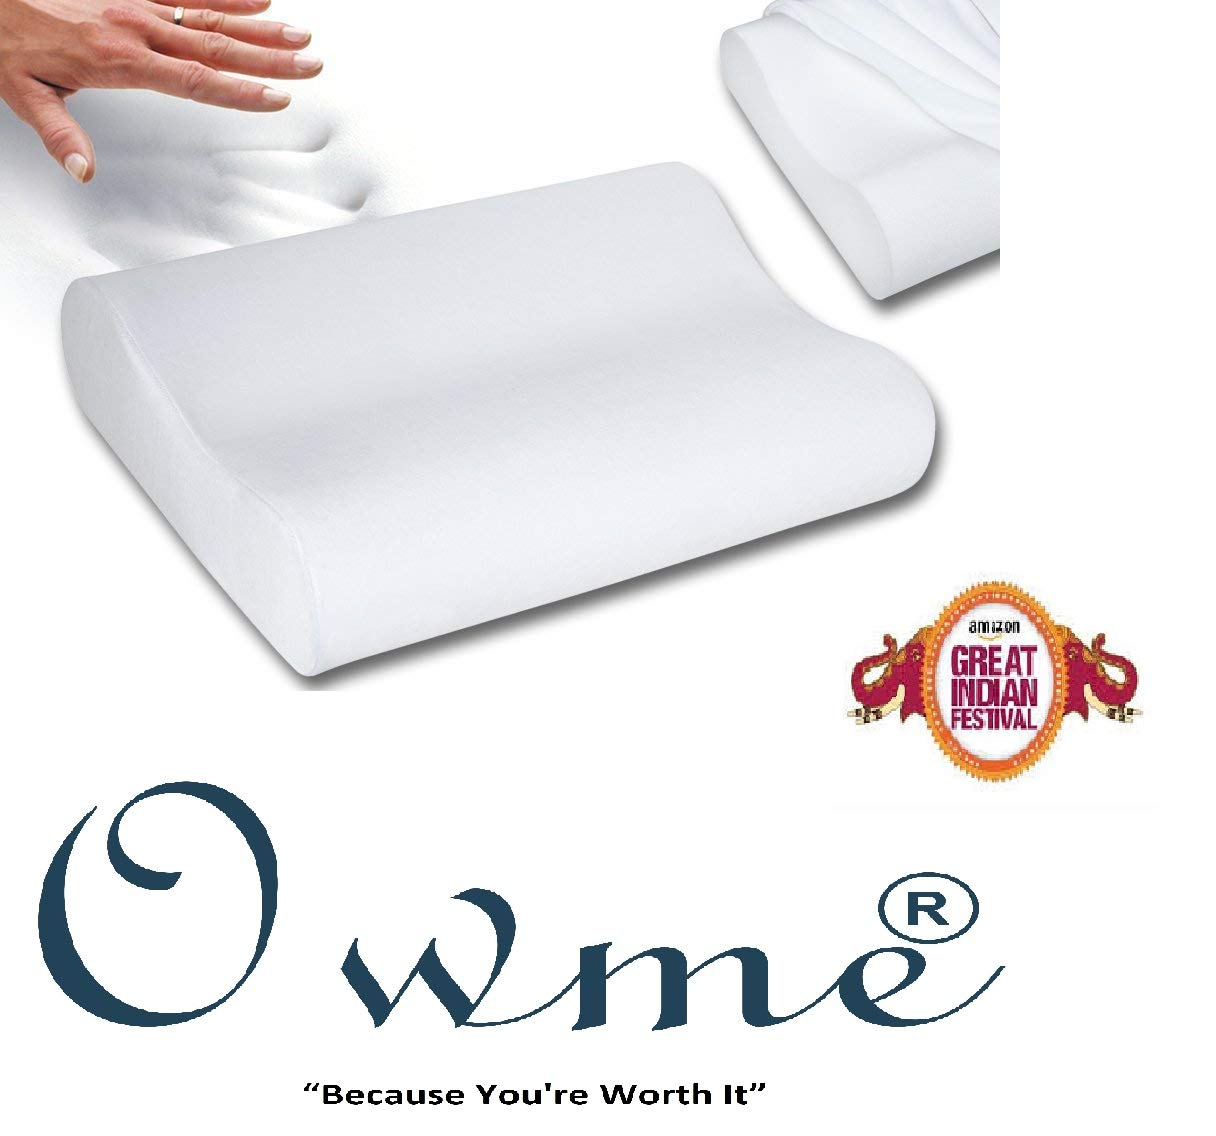 Owme Orthopedic Memory Foam Pillow Standard Size Specialty Medical Neck & Back Support Sleeping Bed Pillow product image